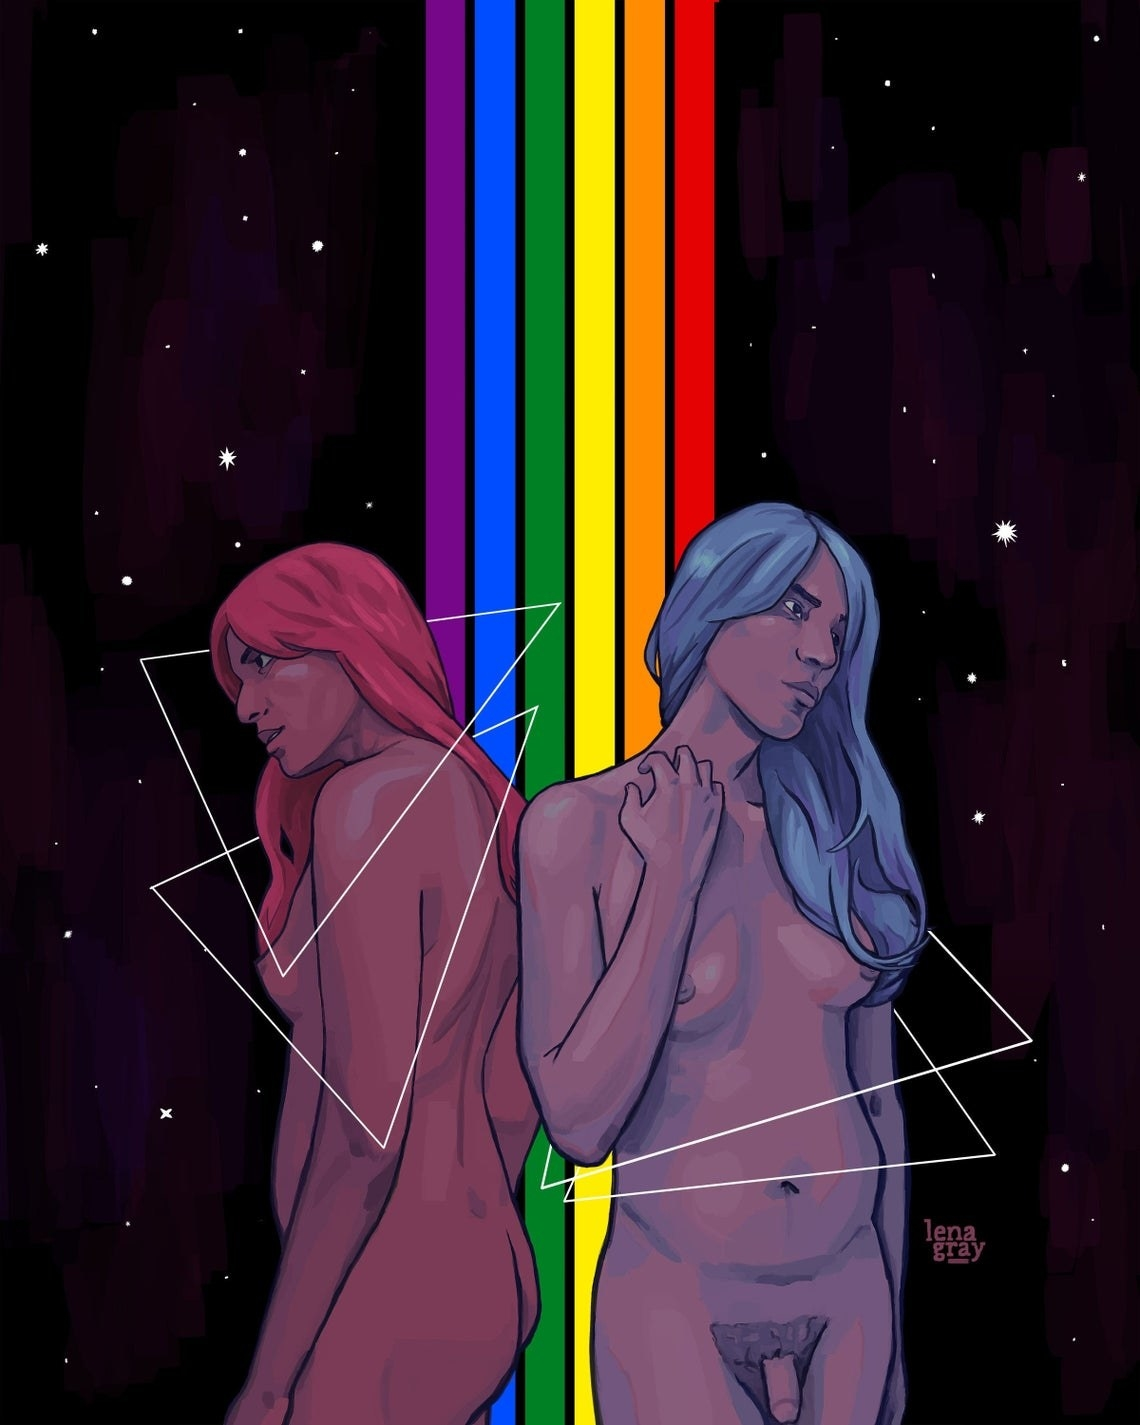 A nude person shown at two angles — from the front and back. They have breasts and a penis, two different colored wigs, and are standing in front of a rainbow stripe, with stars behind them and triangles around them.